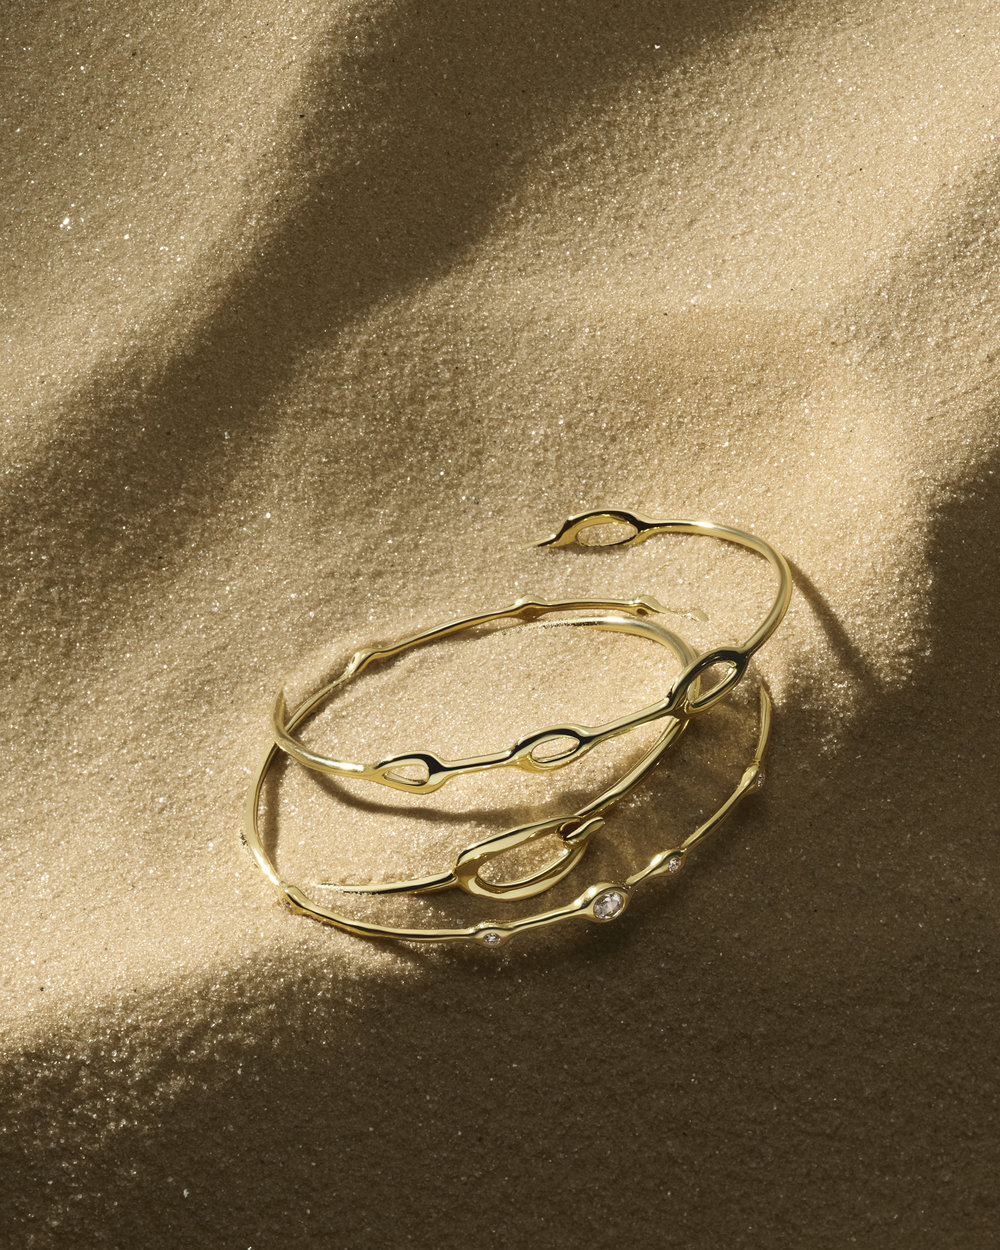 3095_01_MC_Ippolita_+++SP18_Cherish_Gold_Bangles_16796_R1_2_CROP.jpg